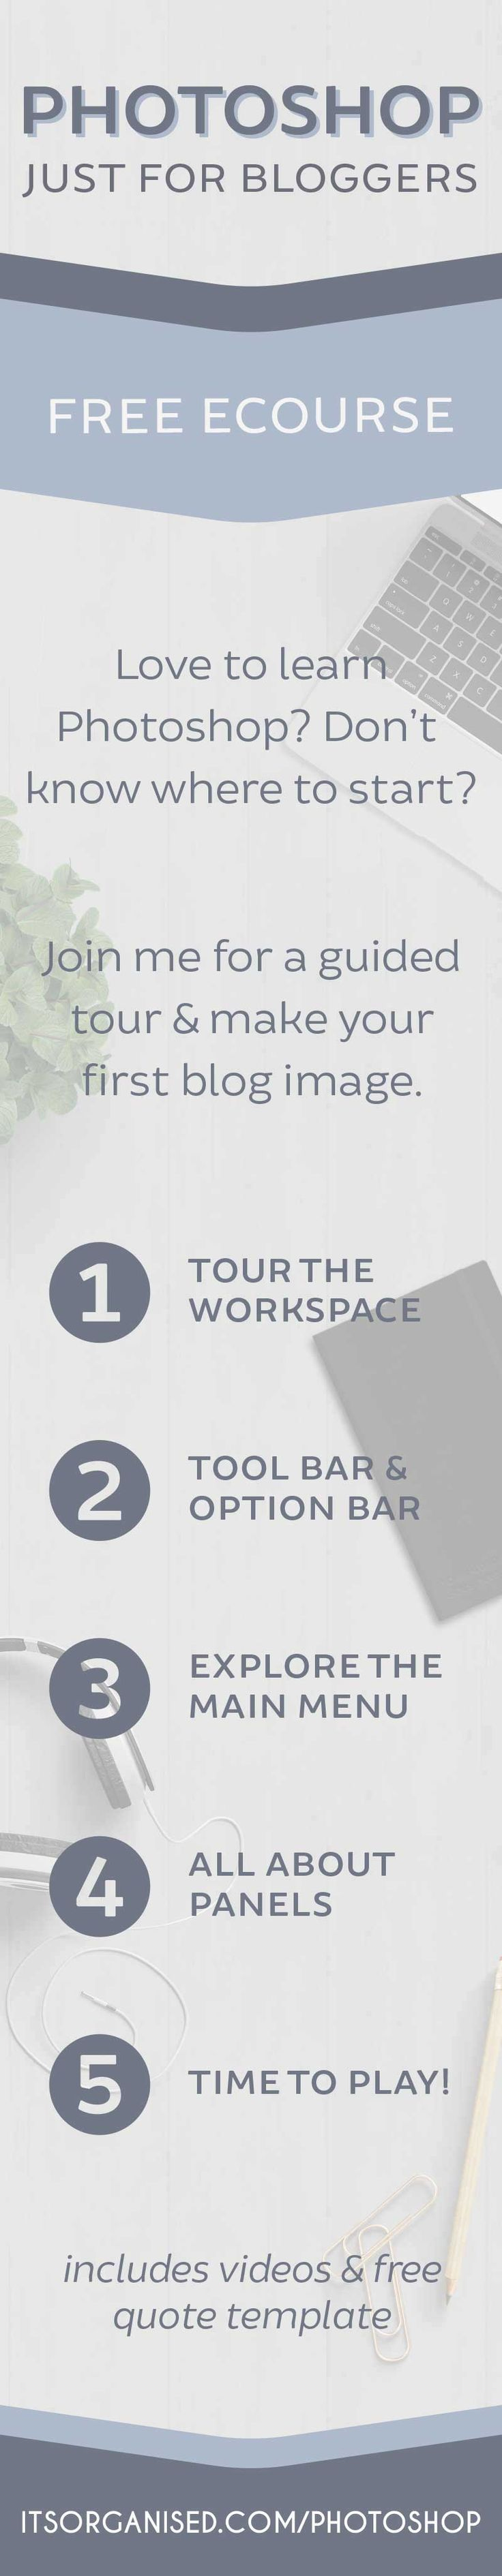 Photoshop for beginners | Would you love to play with Photoshop, but don't know where to start? Join me for a guided tour and make your first blog image (free template and videos included). If you've always wanted to learn Photoshop, this course is a perfect, gentle introduction. Go on, have a go!